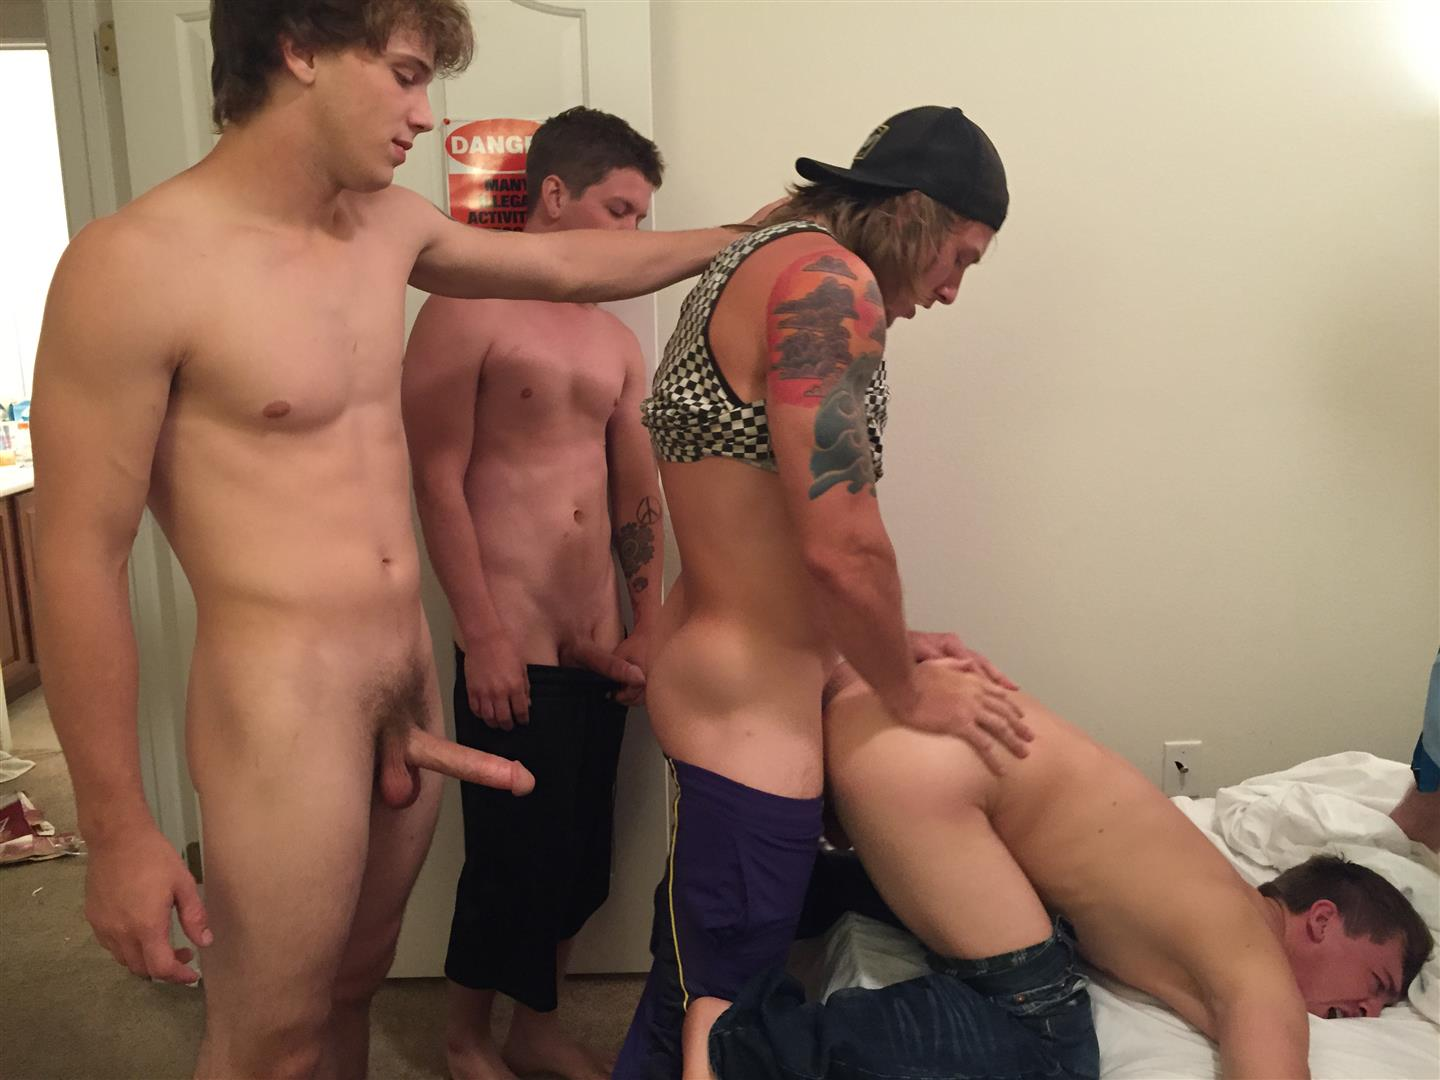 amaetur sex videos tumblr gay